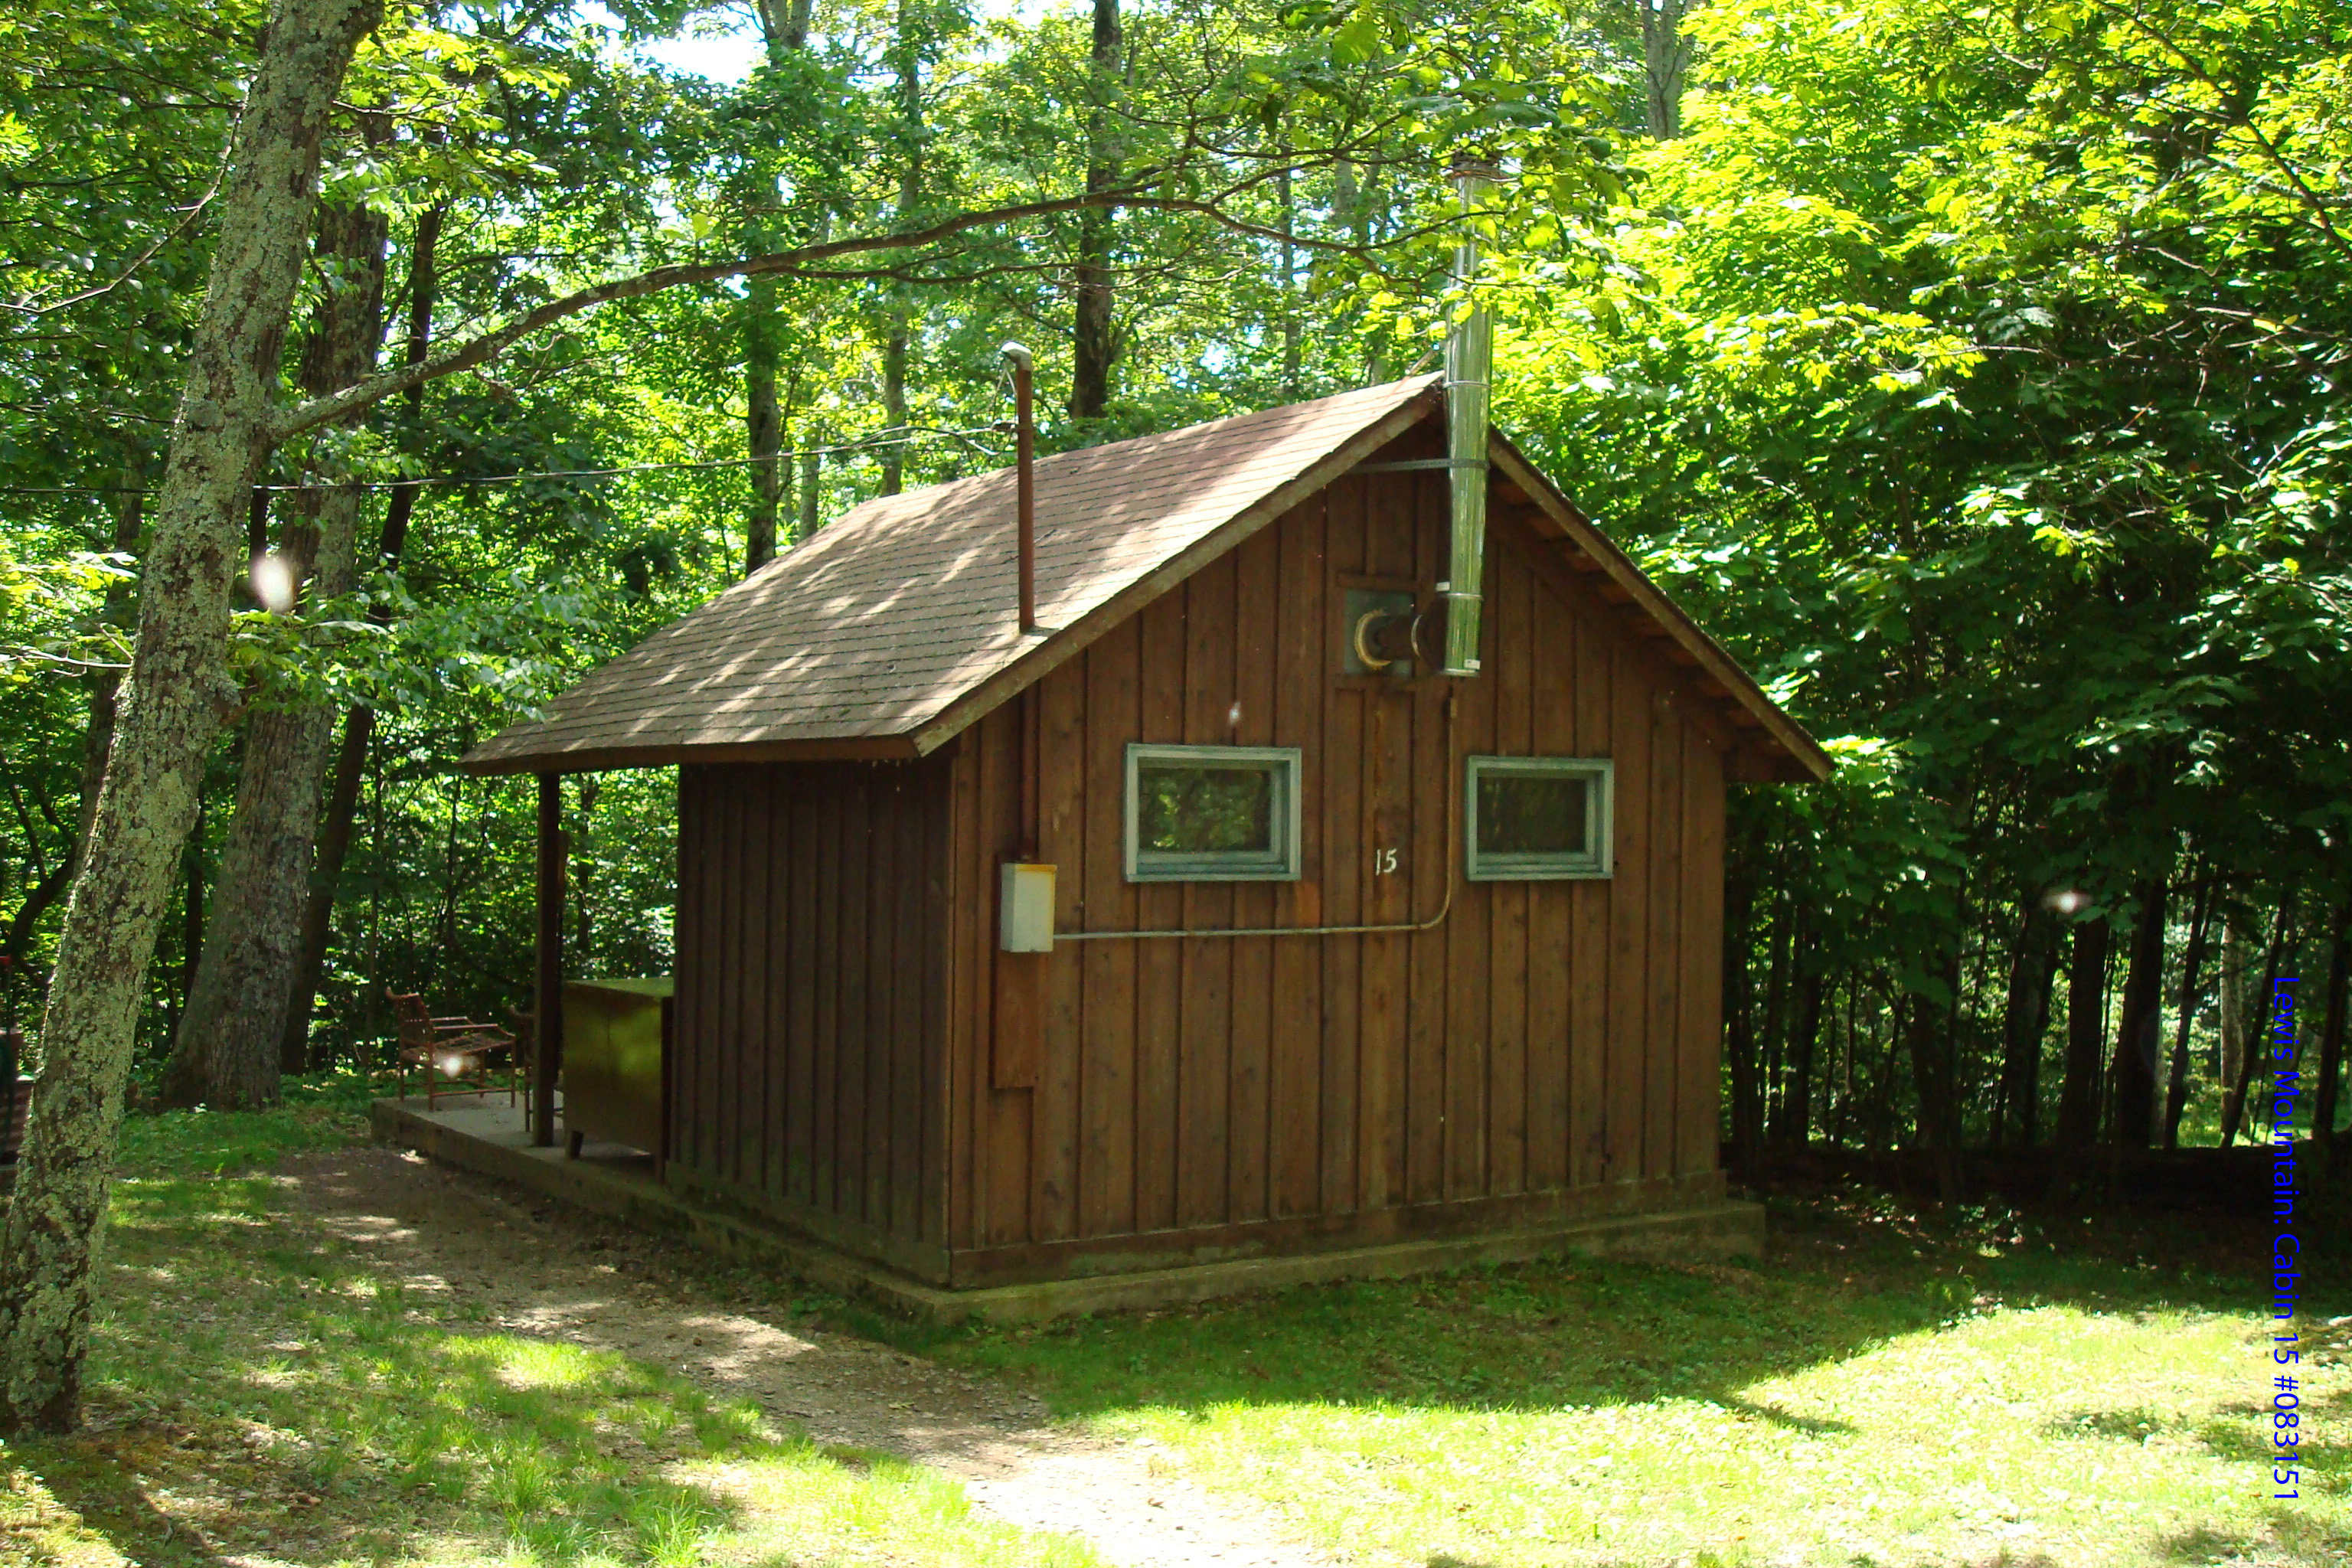 luray valley acorn await adventures shenandoah hill cabins cabin rentals